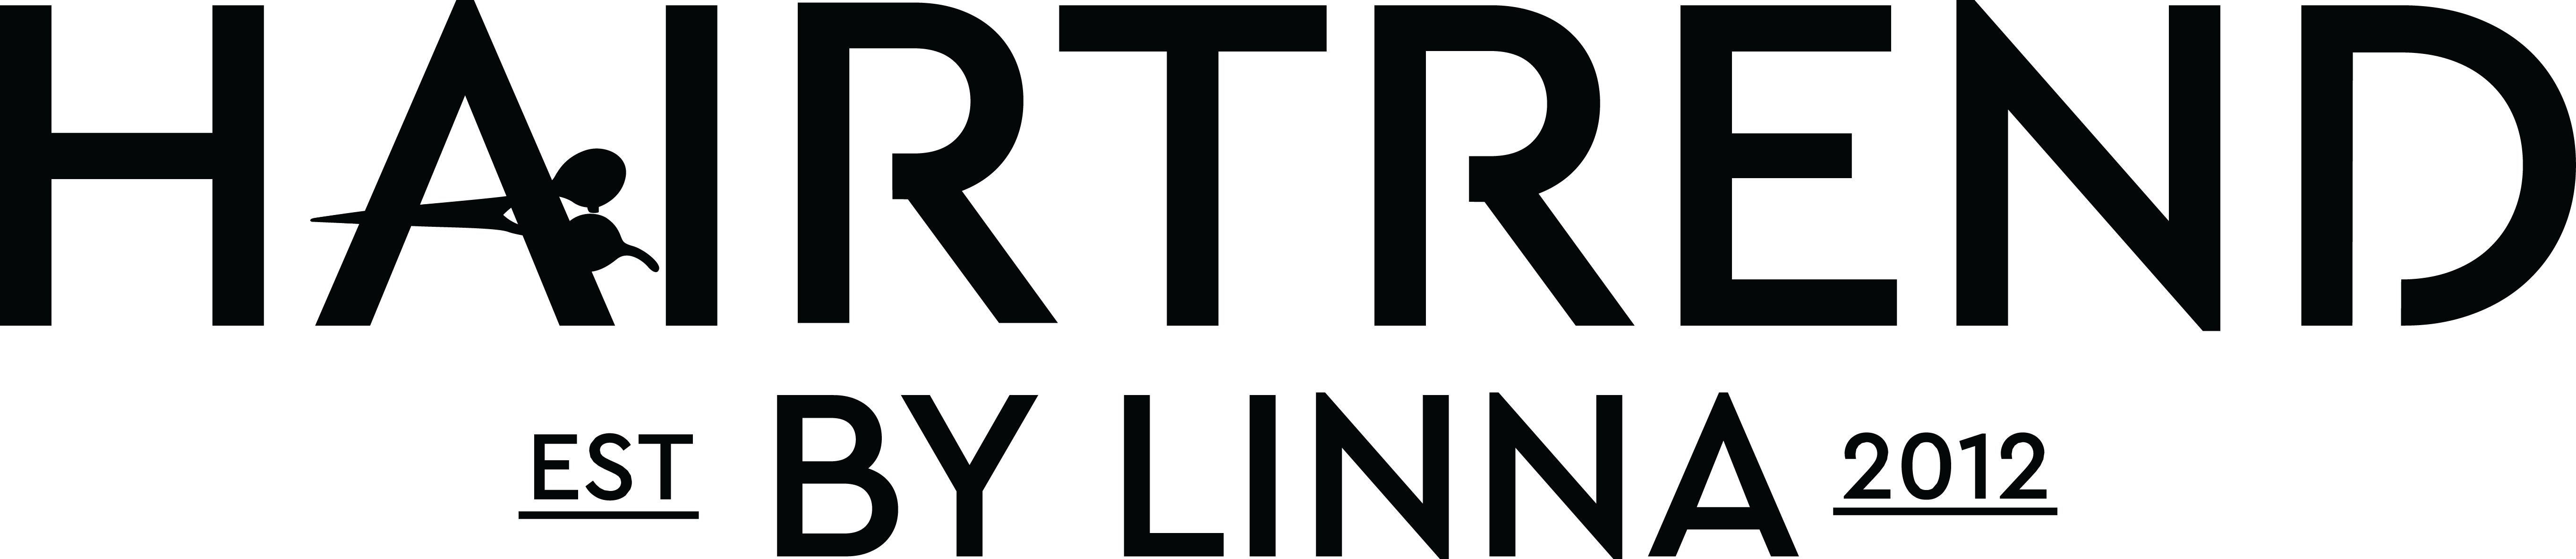 Logo that says Hairtrend by Lina est 2012.